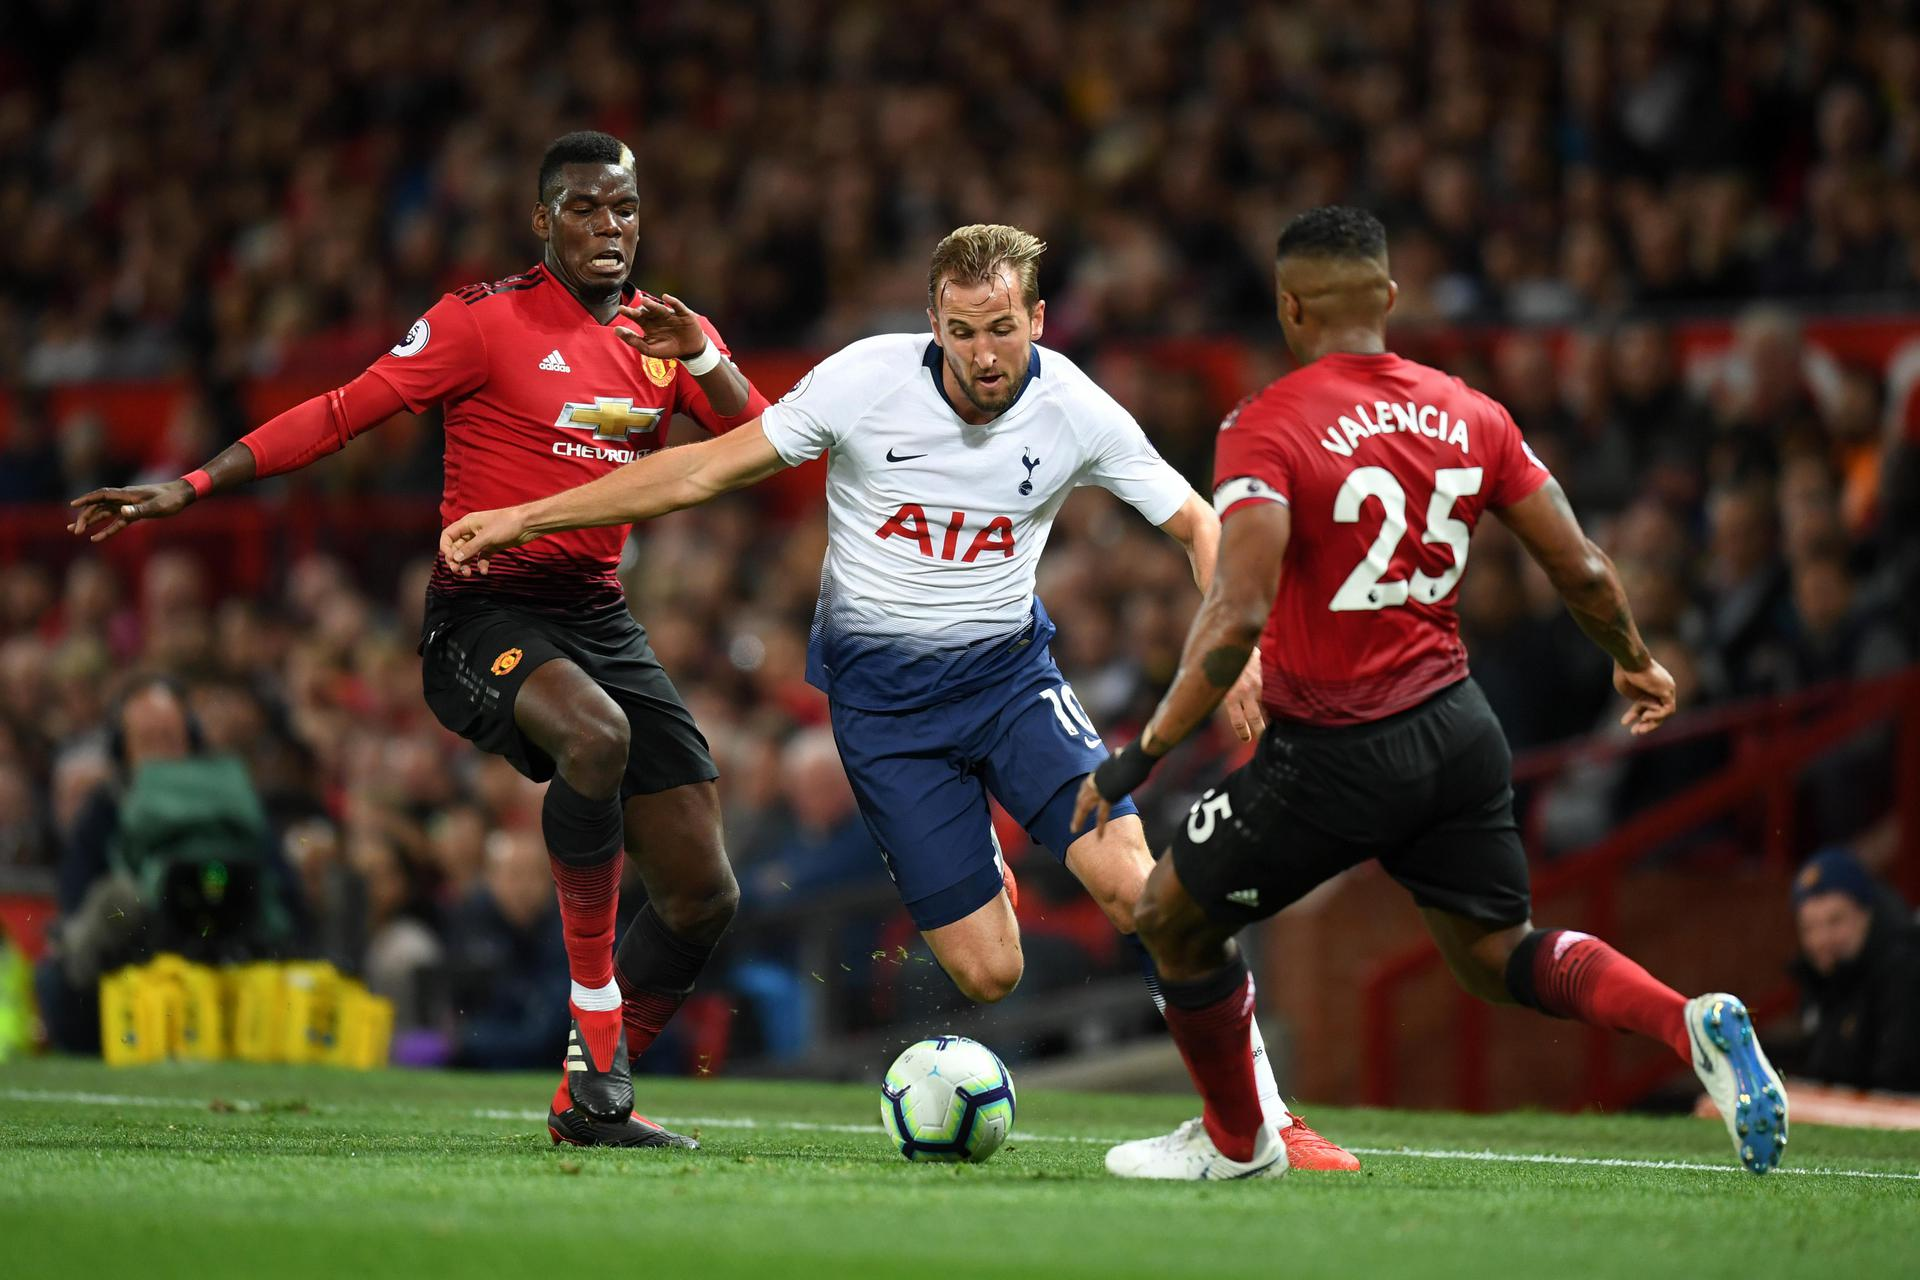 Harry Kane takes on Paul Pogba and Antonio Valencia